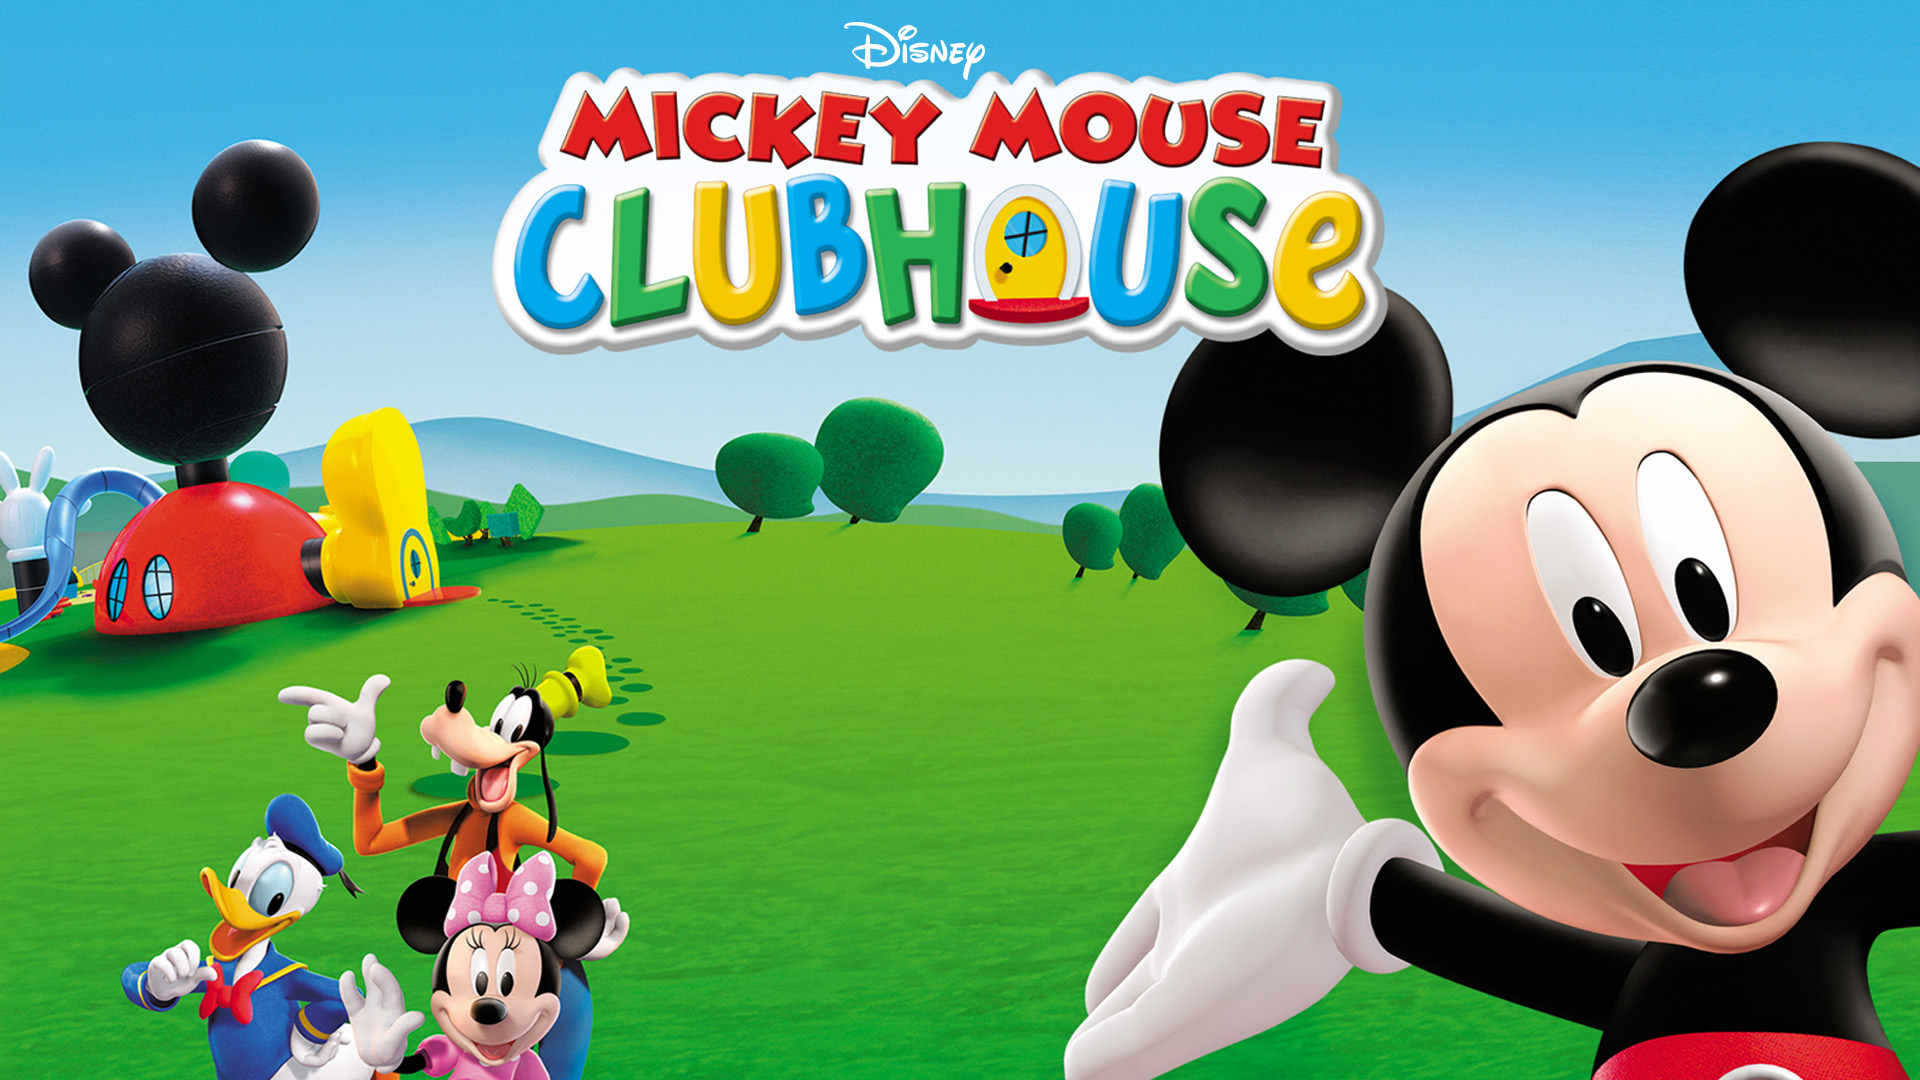 Mickey Mouse Clubhouse Volume 46